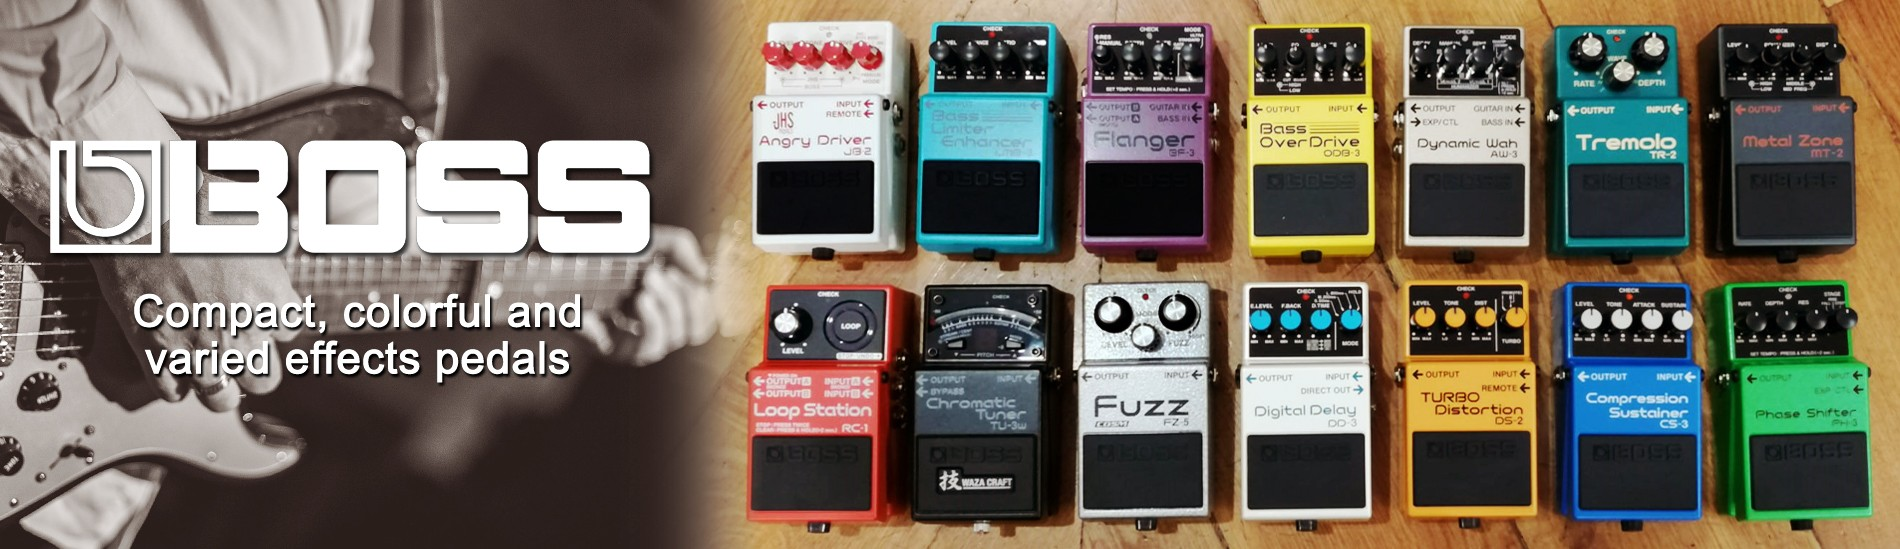 Boss - Compact, colorful and varied effects pedals